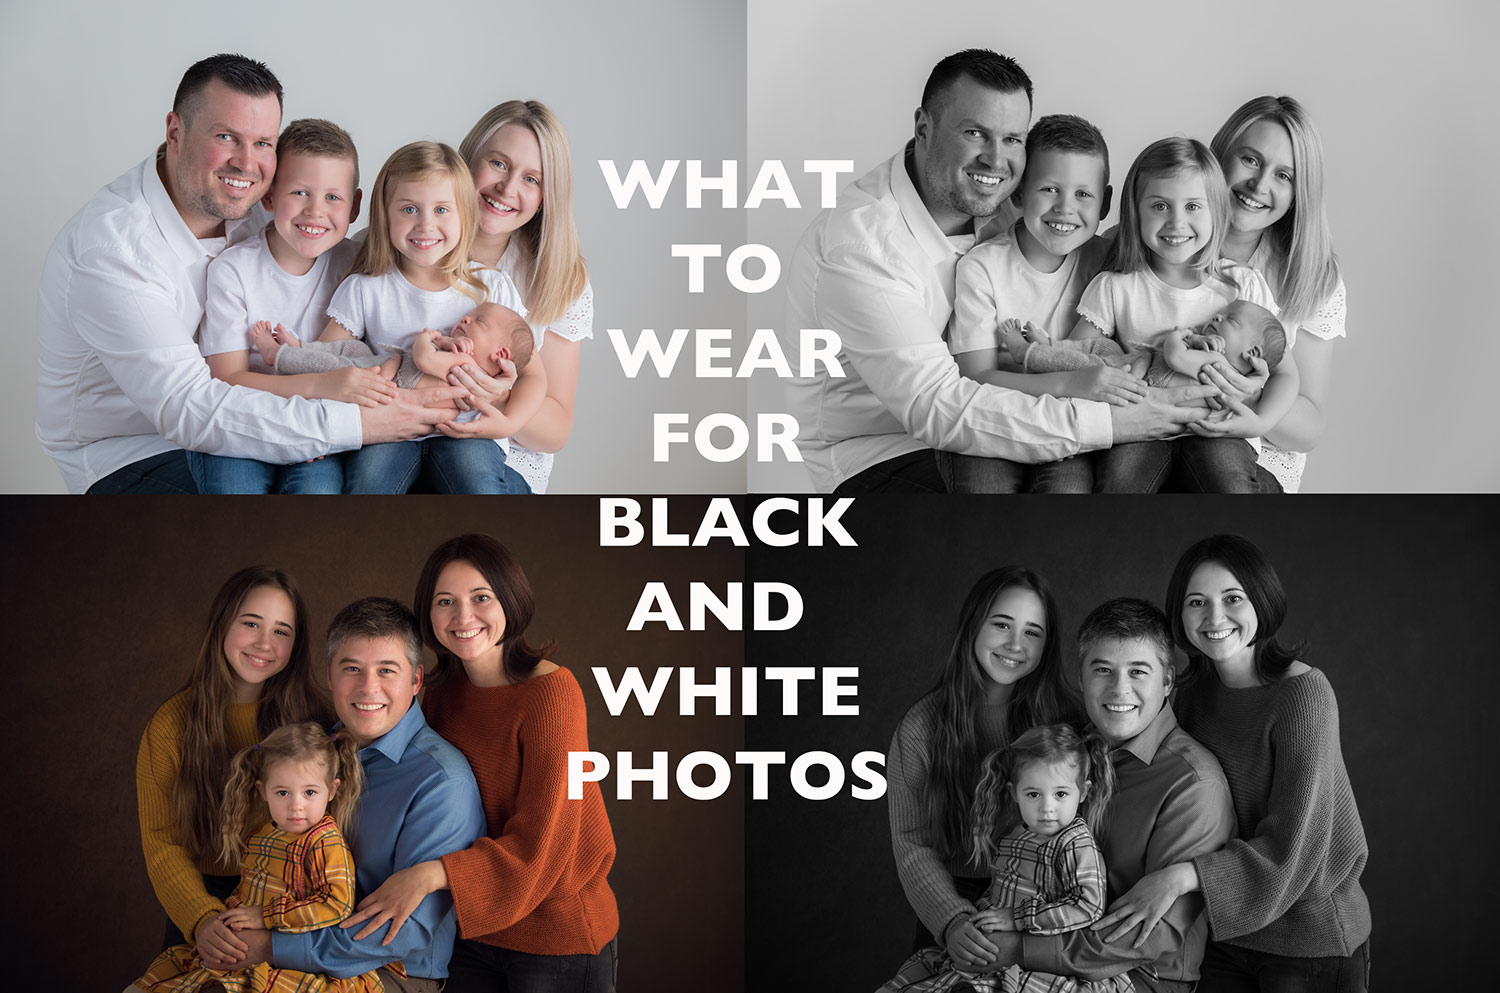 Guide for what to wear for black and white photos.